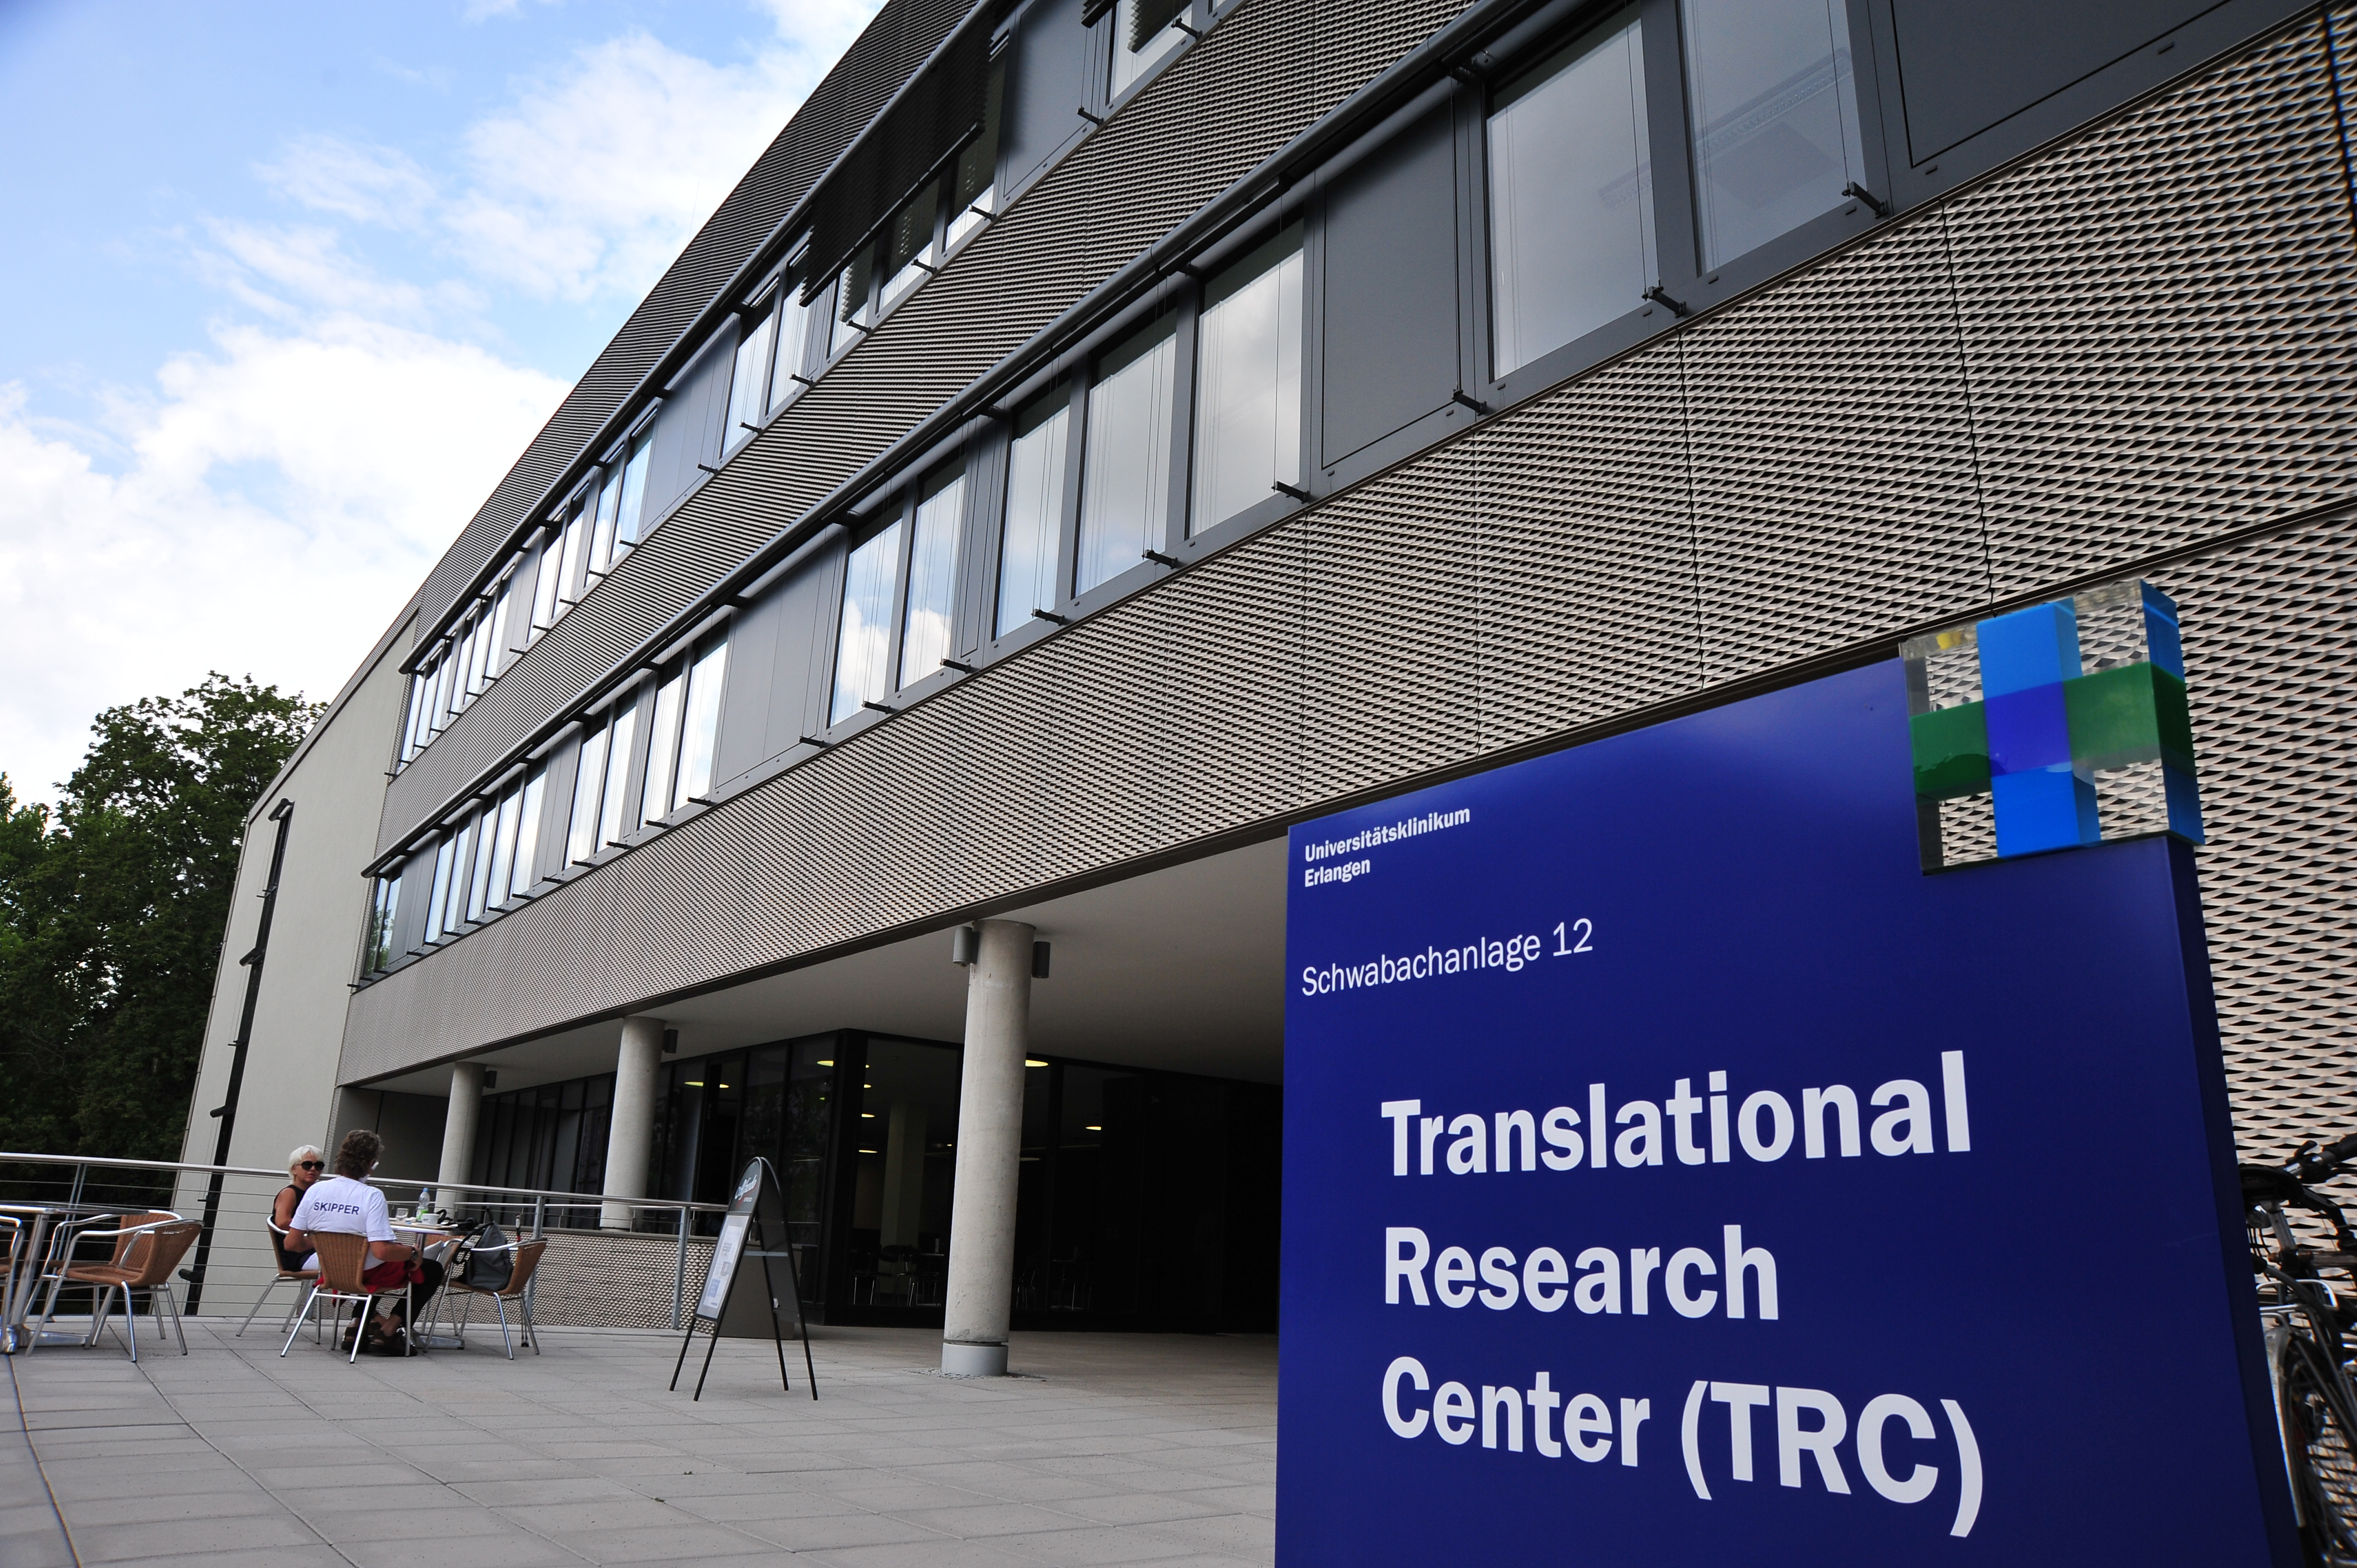 Translational Research Center